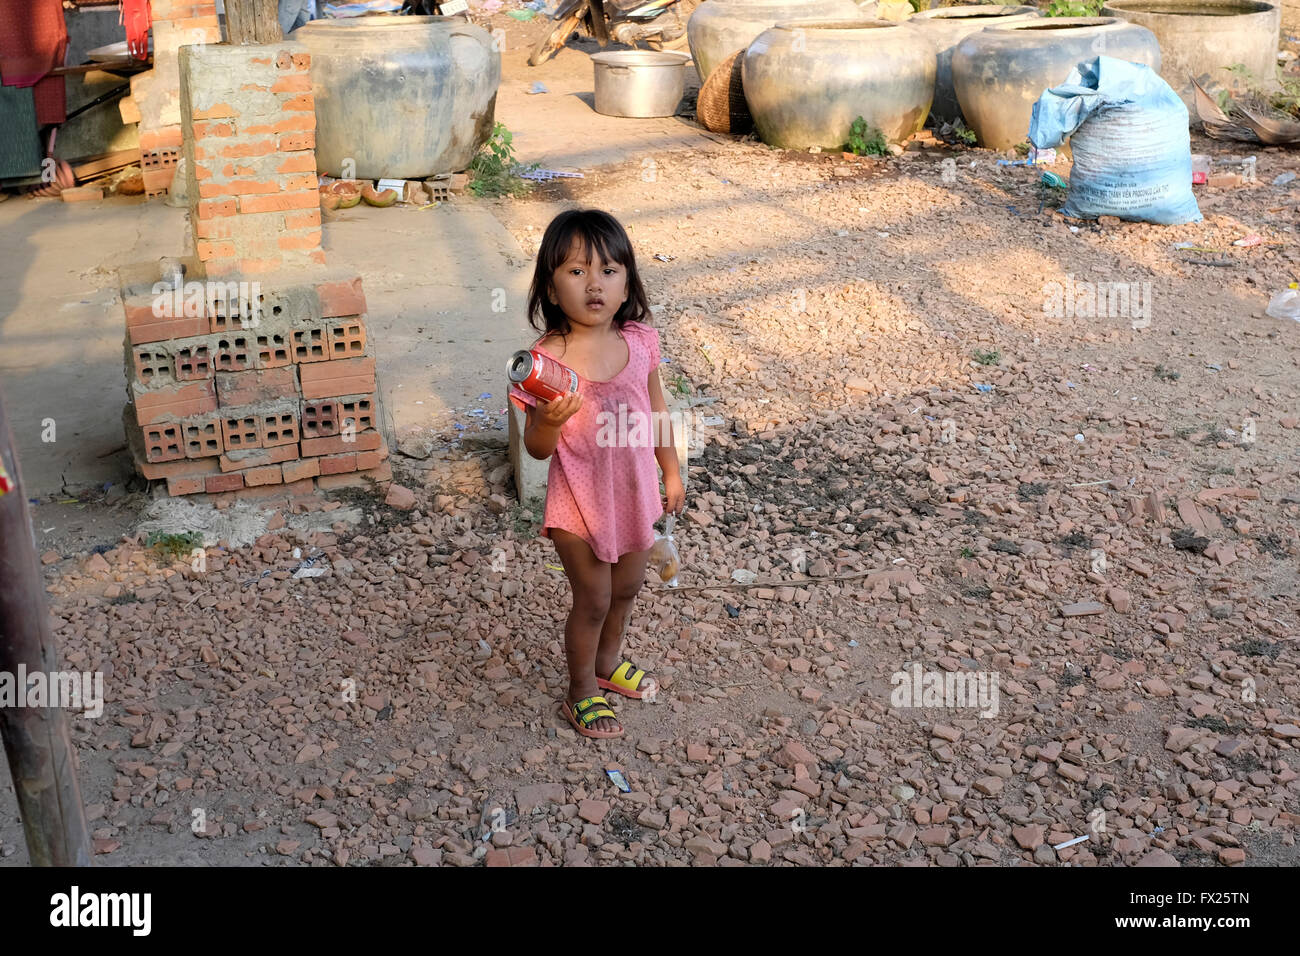 Opinion pictures of naked cambodian girl have kept